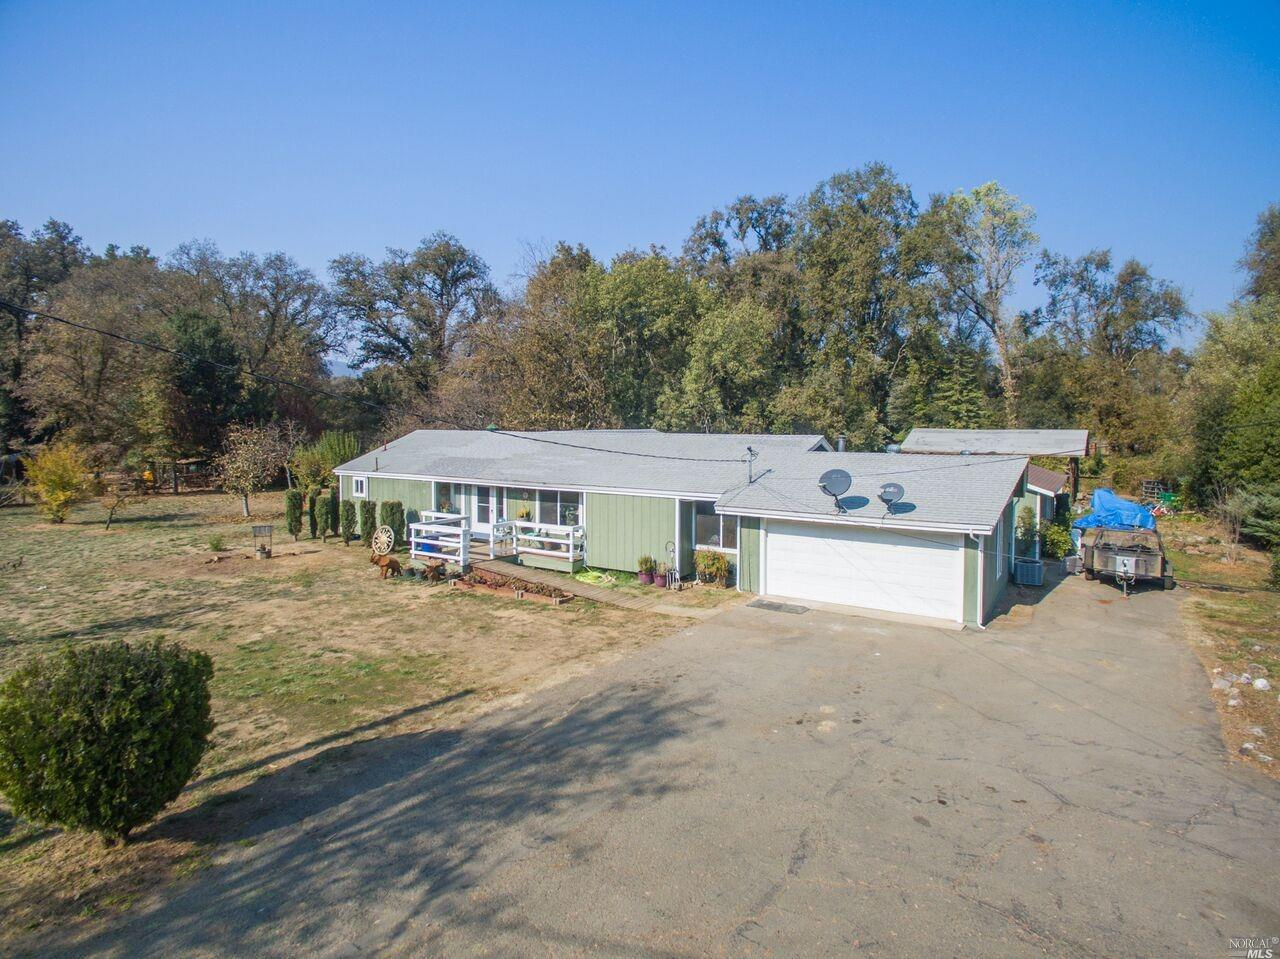 8600 E Side Potter Valley Road, Potter Valley, CA 95469